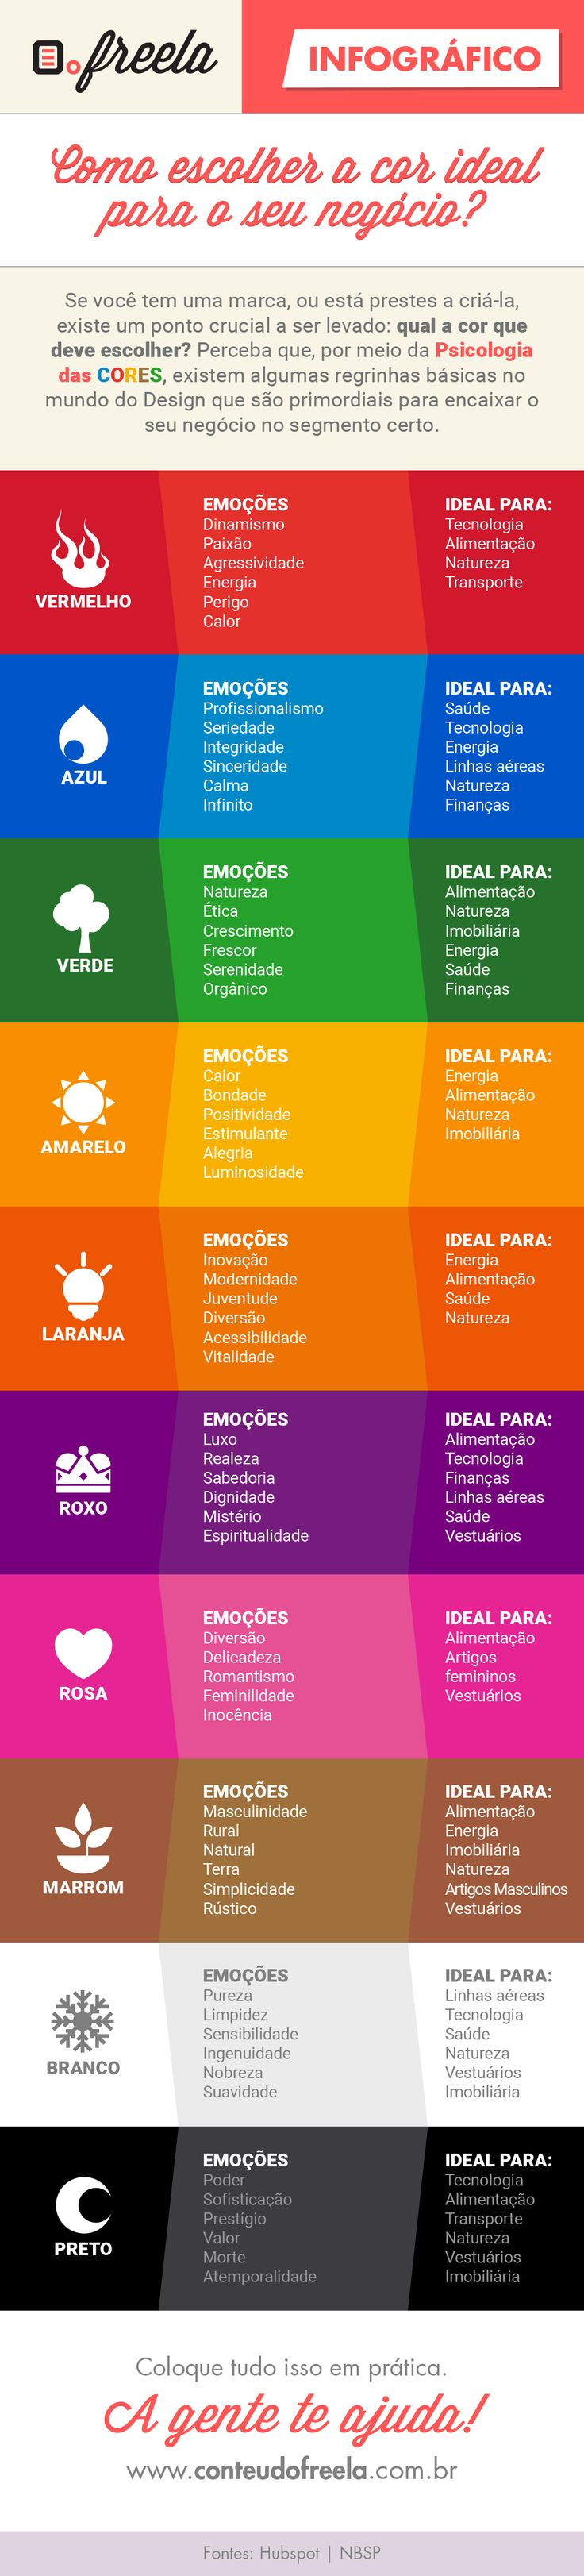 Infográfico Psicologia das Cores no Marketing.